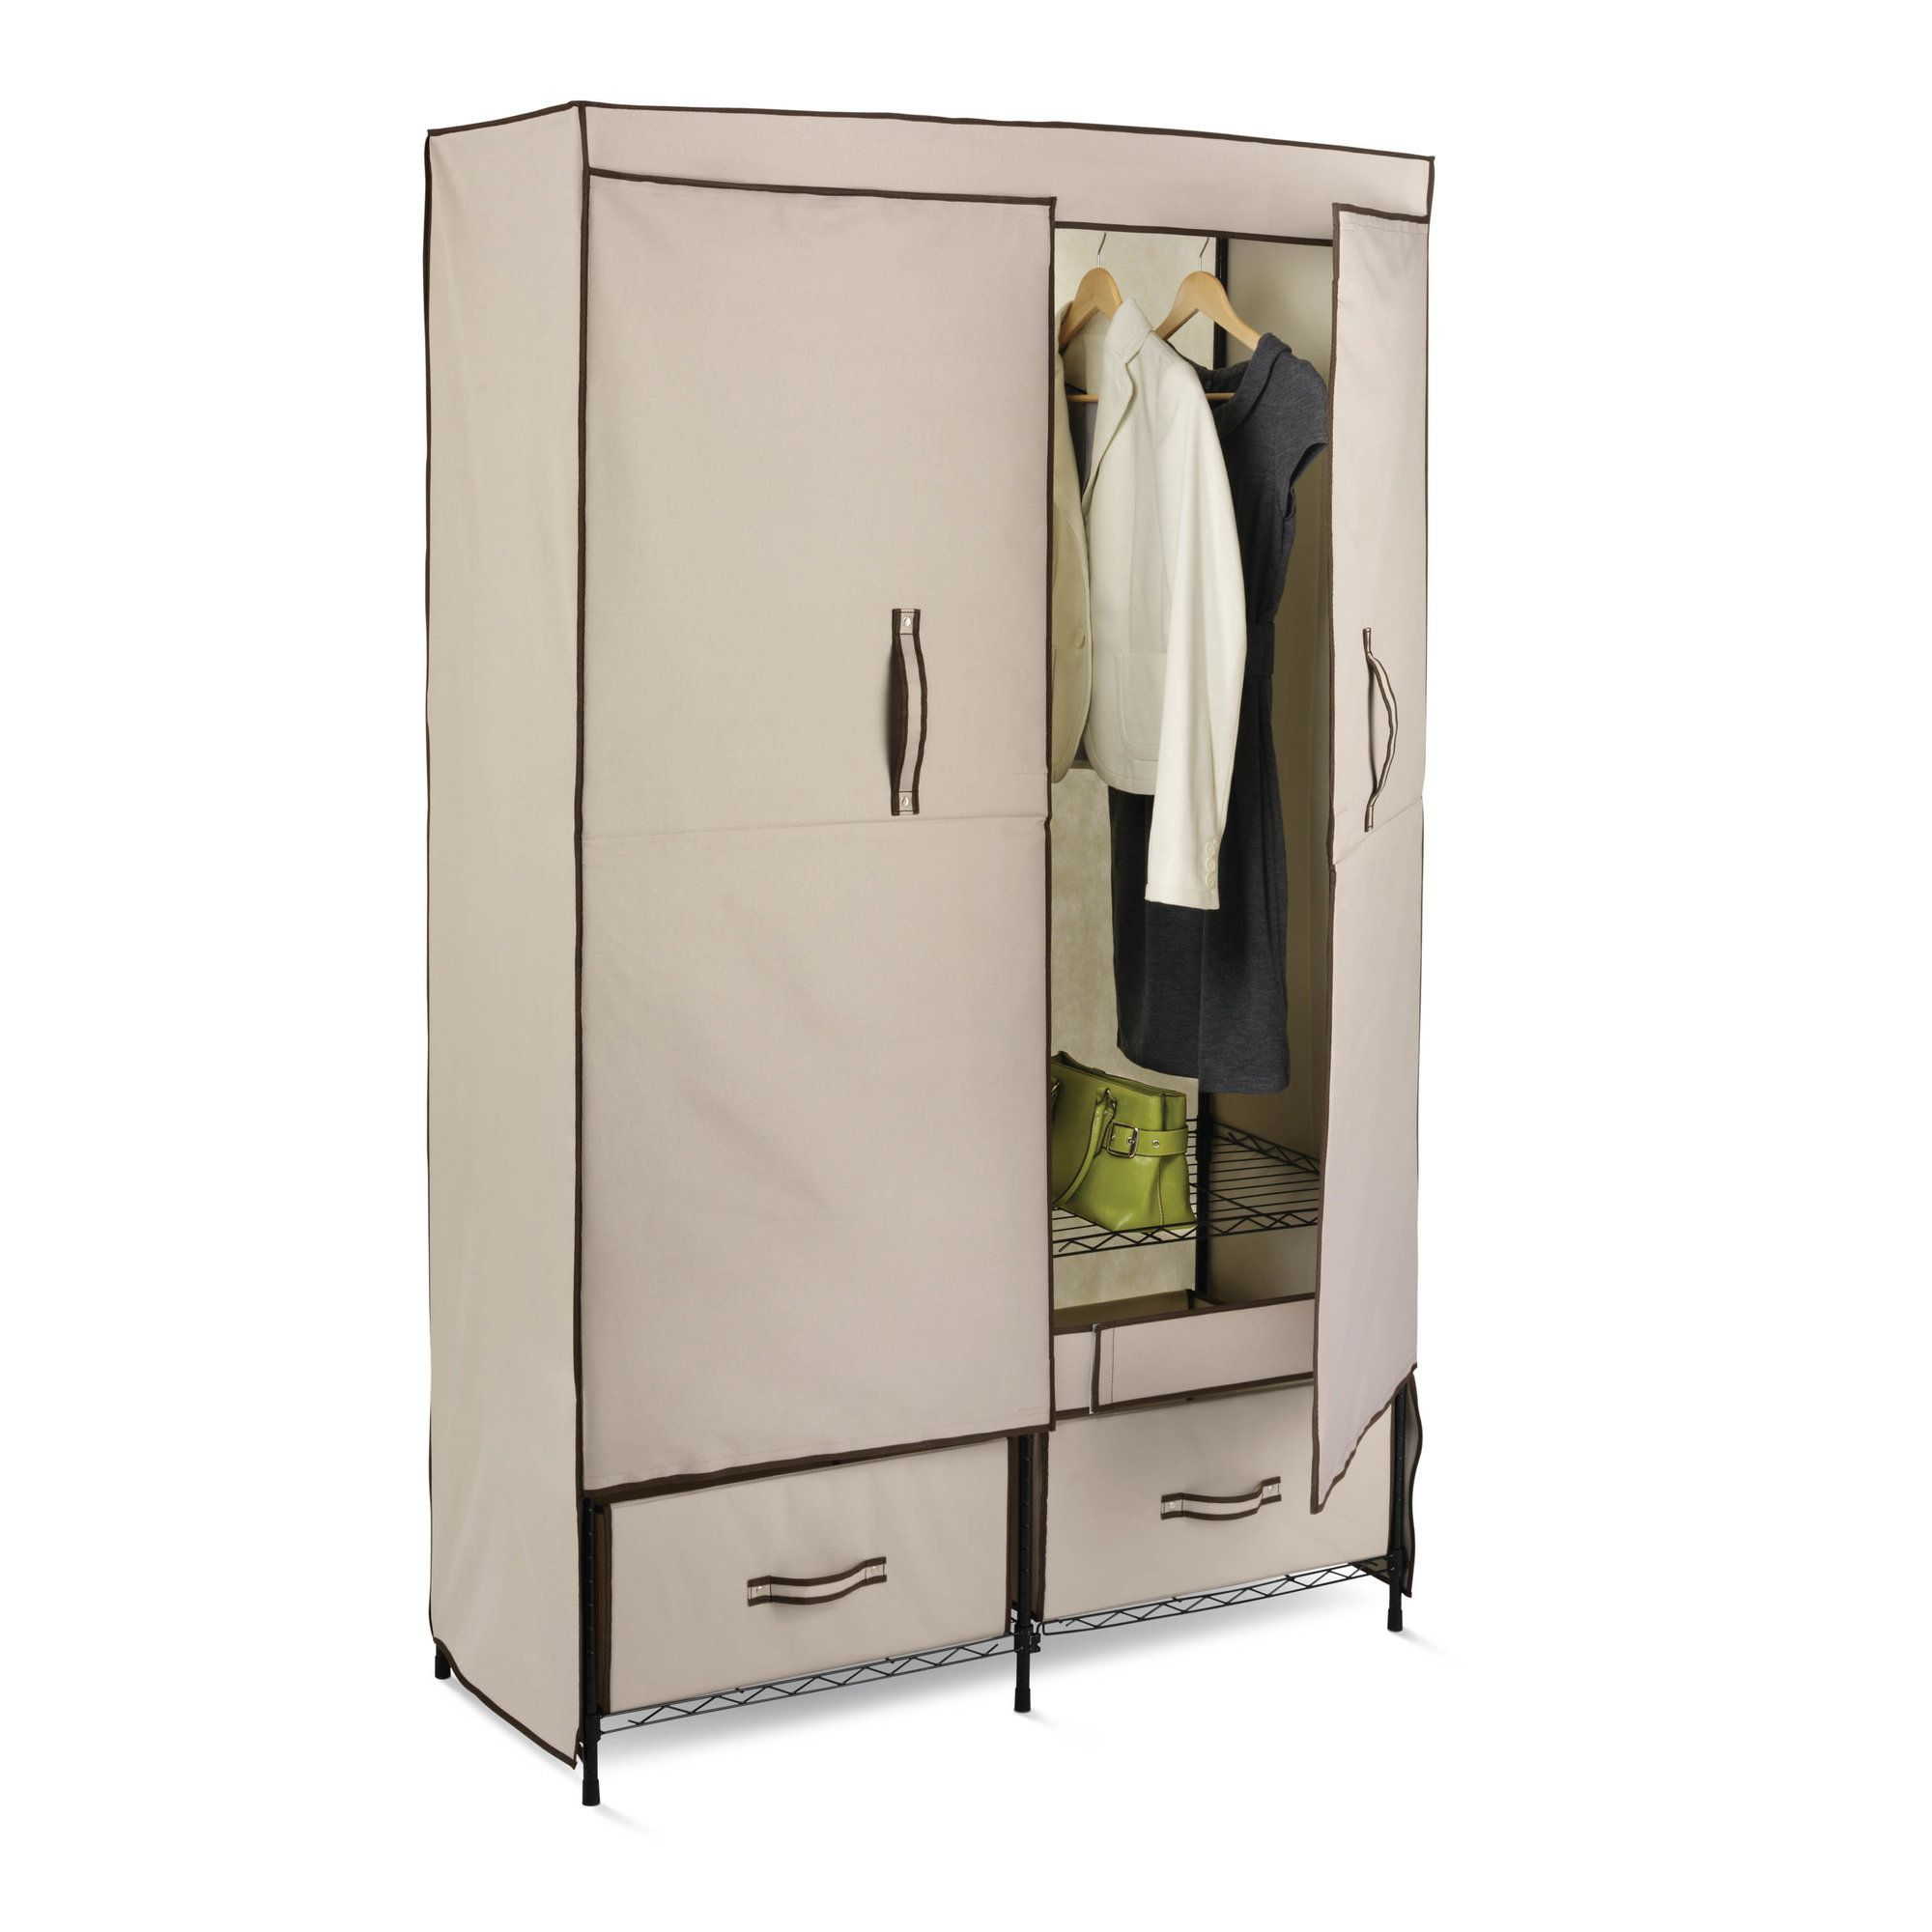 Darcy storage wardrobe products pinterest wardrobes and products